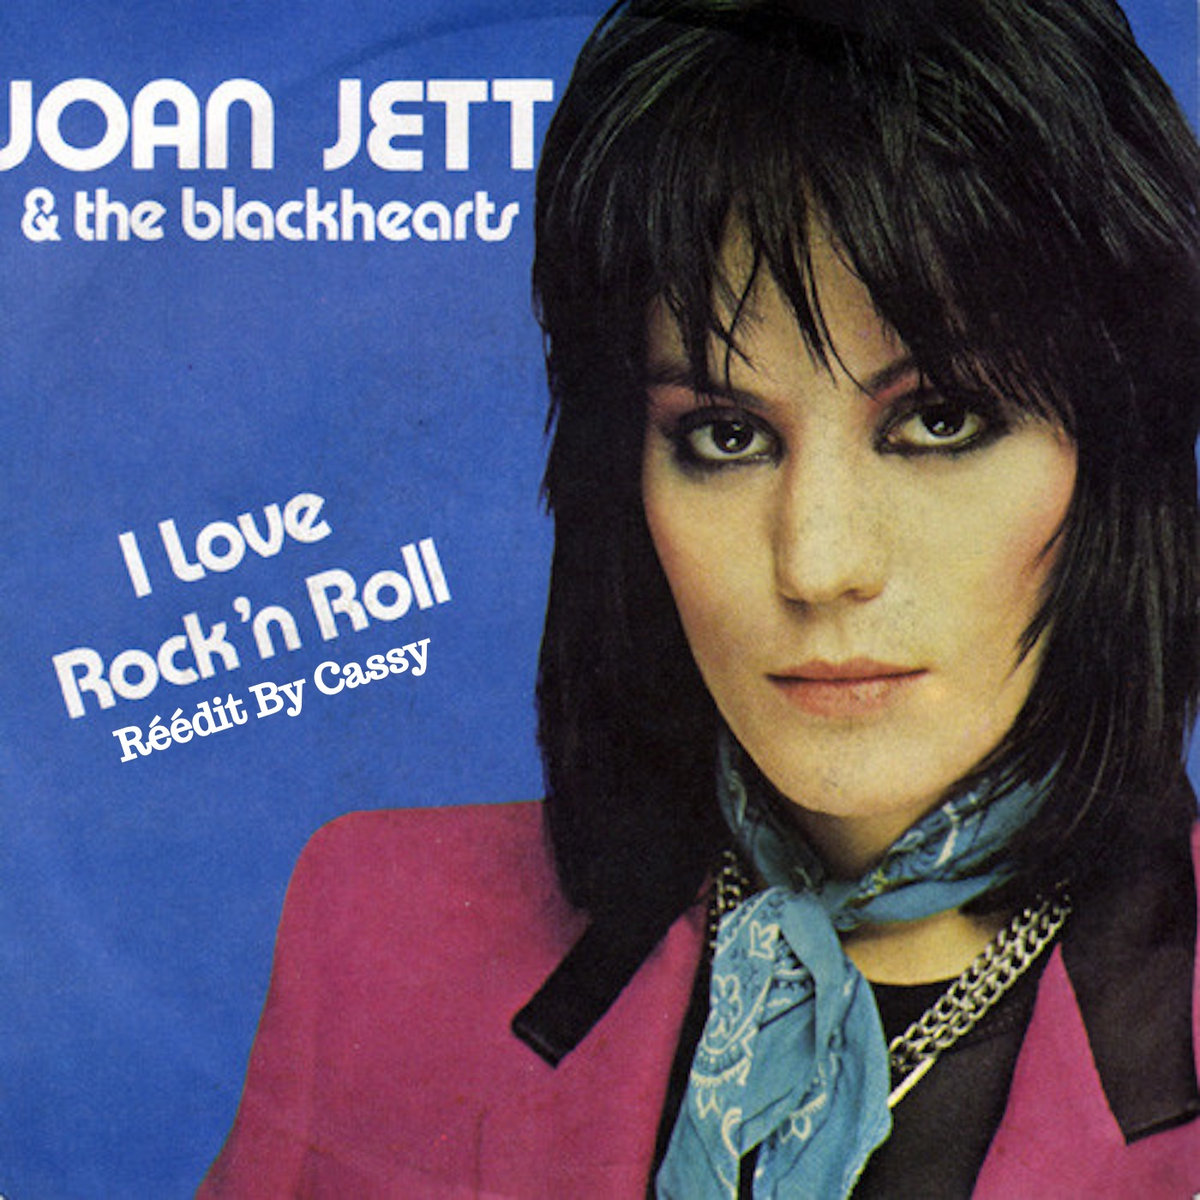 Joan Jett I Love Rock N Roll Réédit By Cassy 97 Bpm Cassydiscofunk